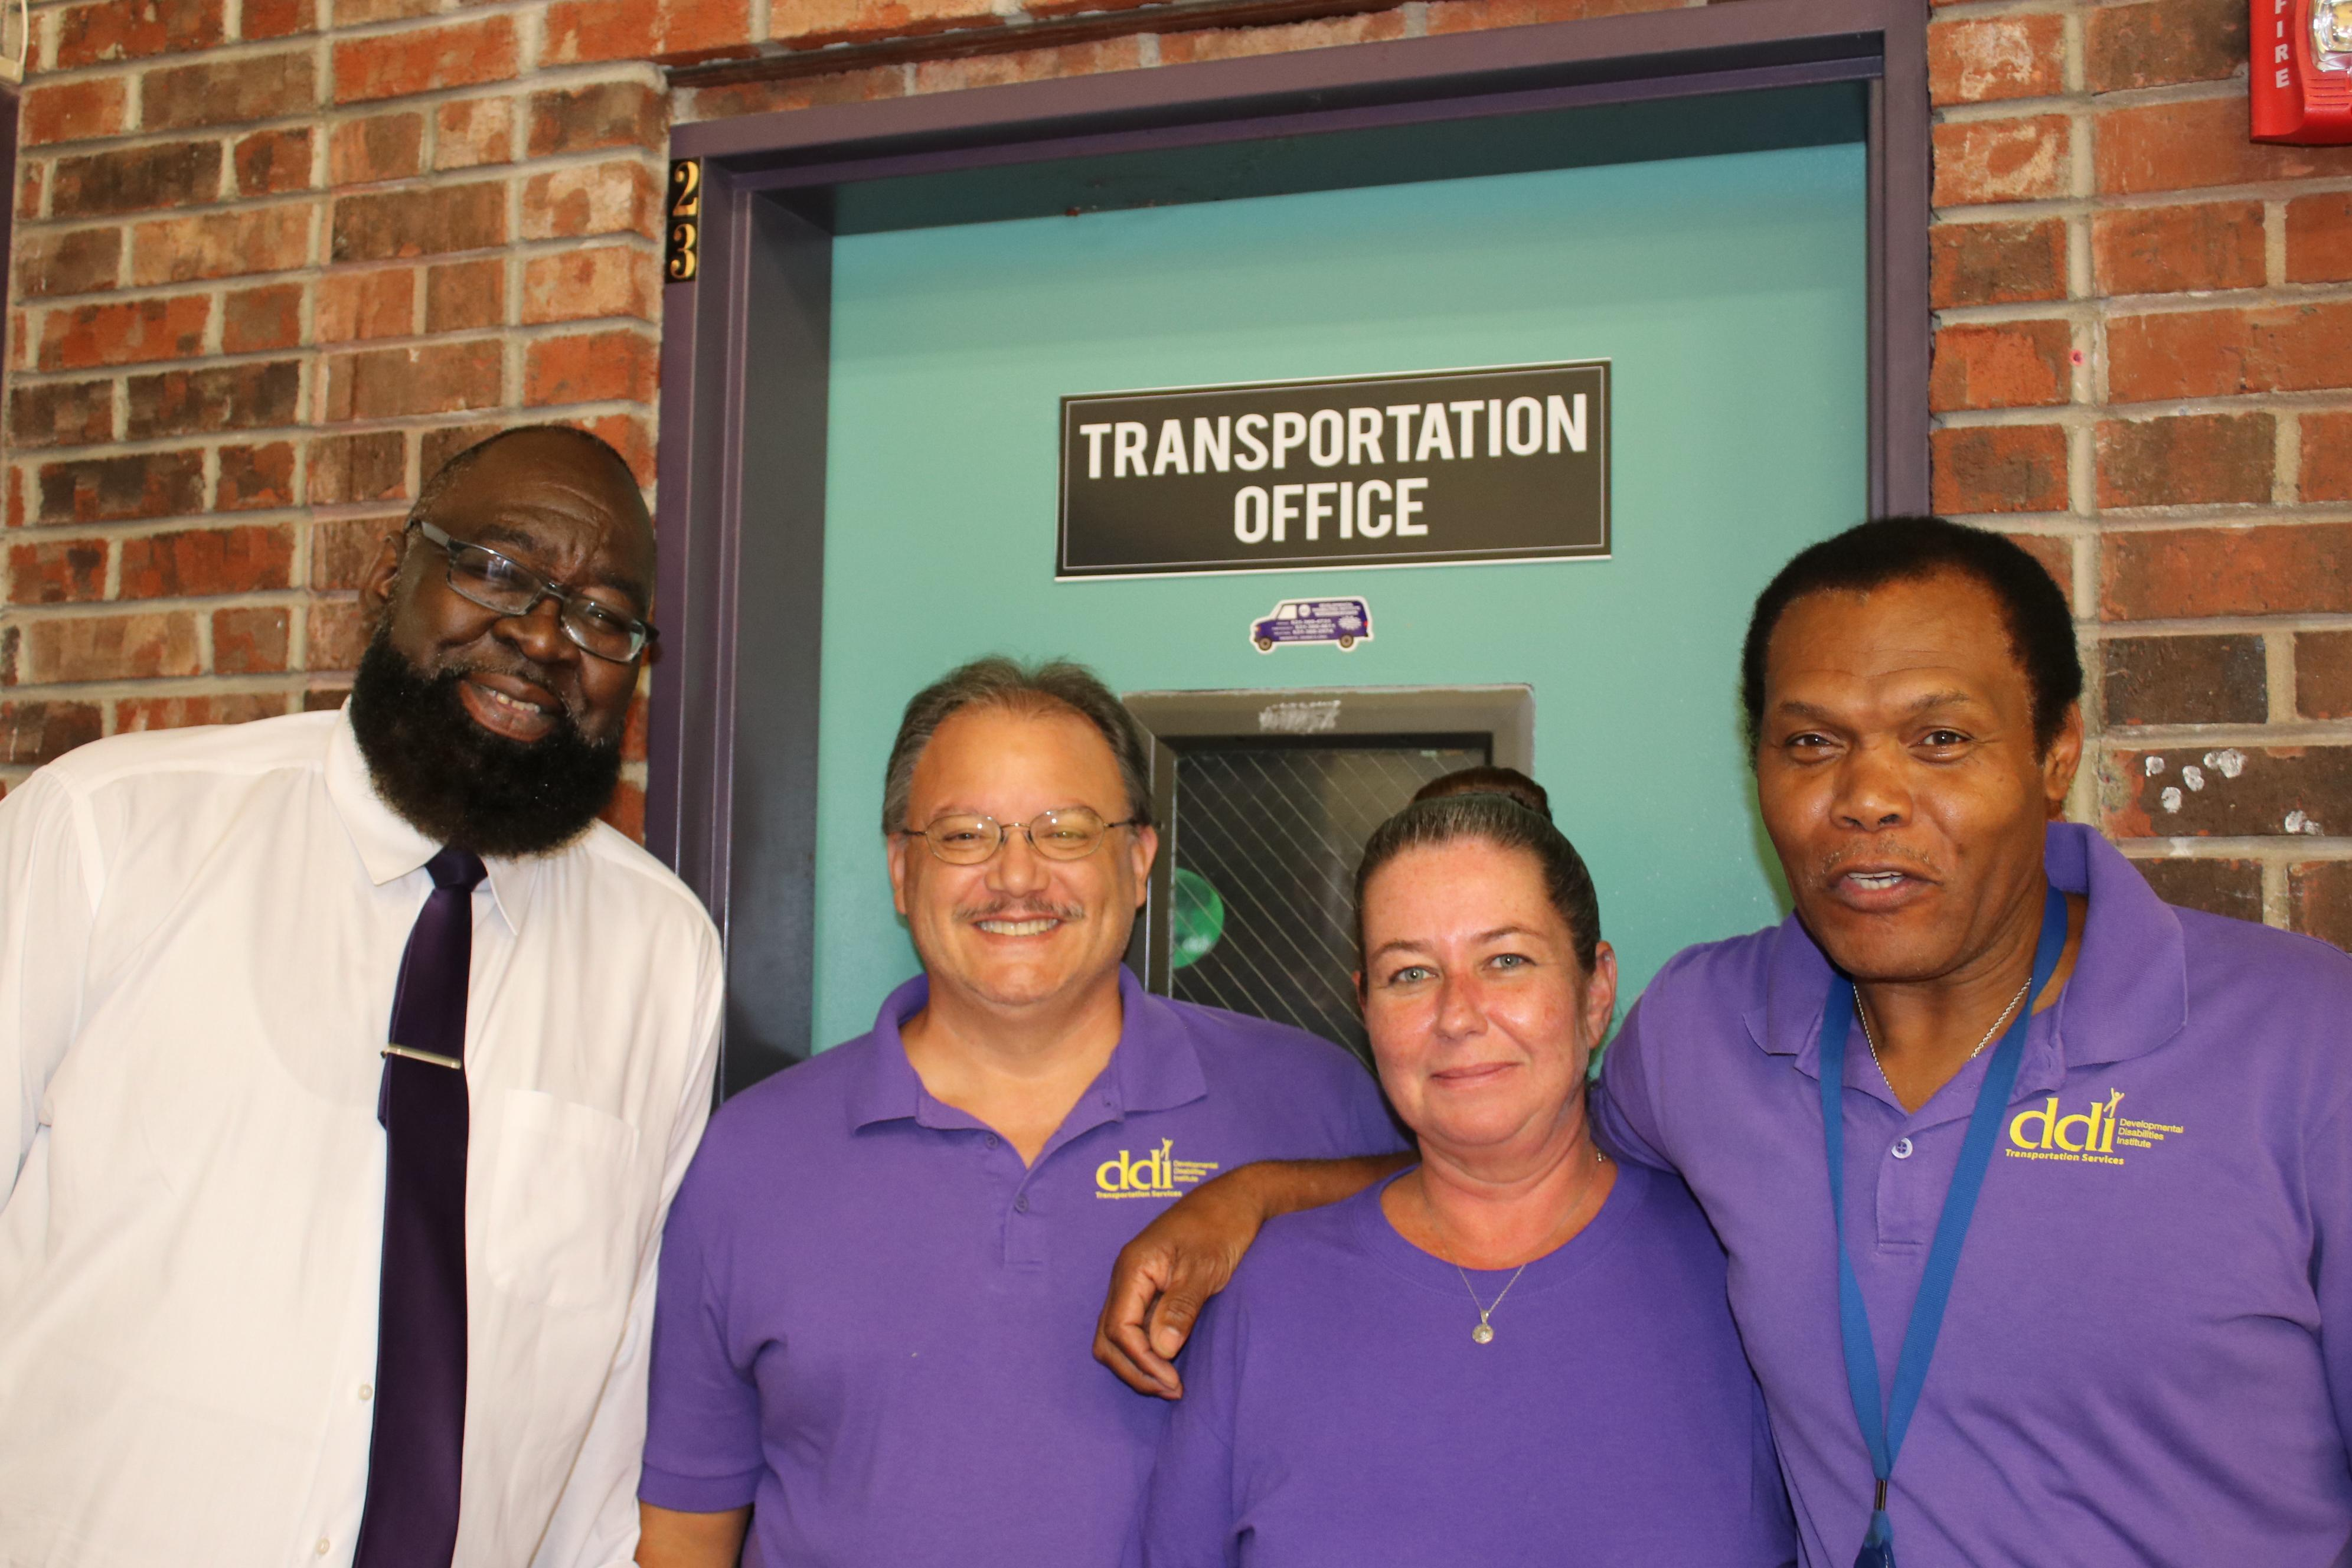 Group photo from transportation